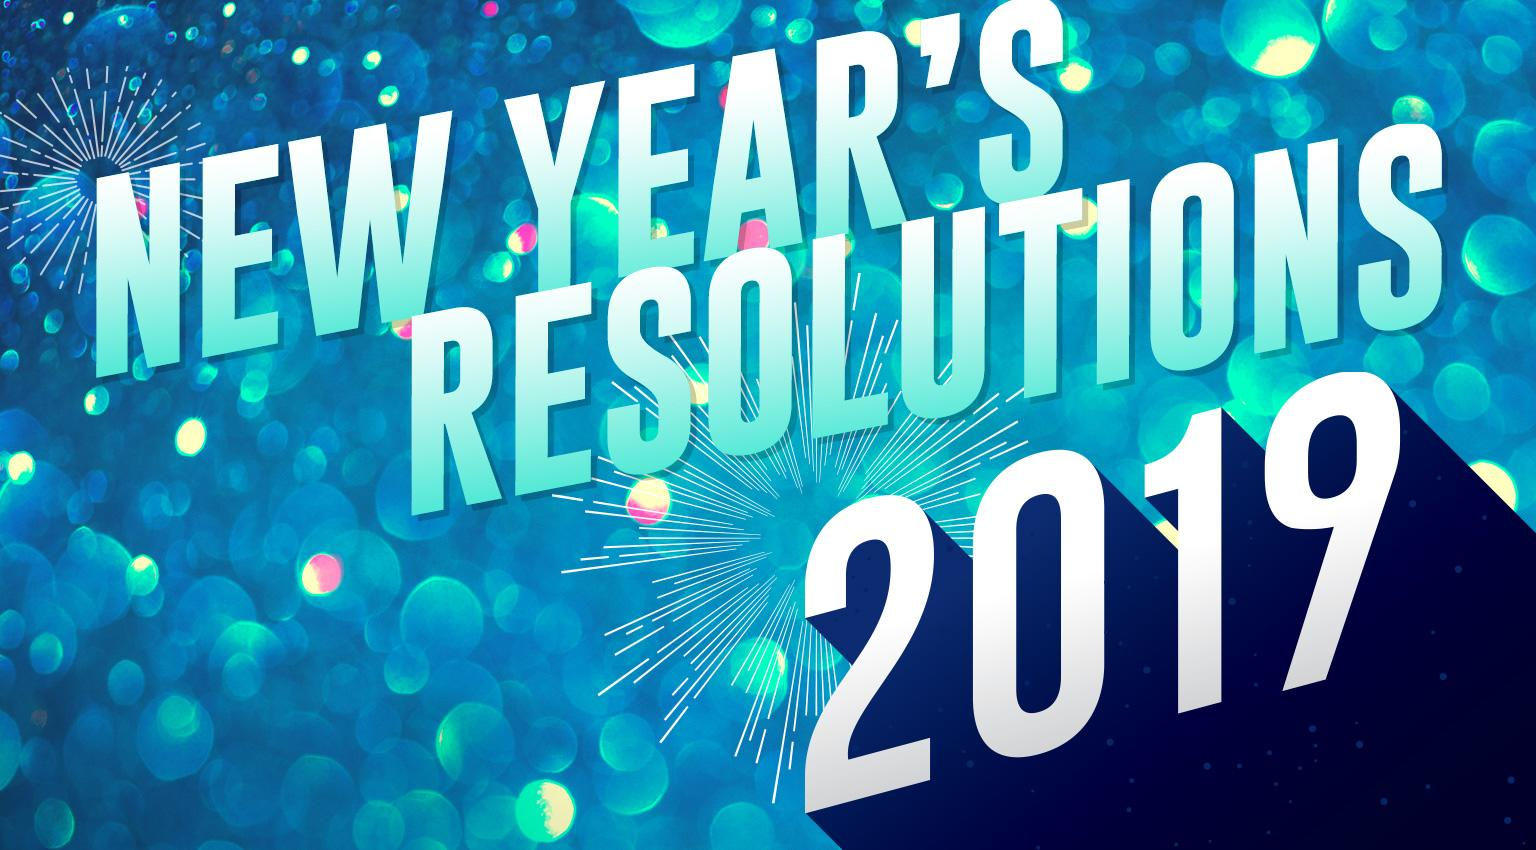 mobile version of new years resolutionist banner 2019 - blue and teal